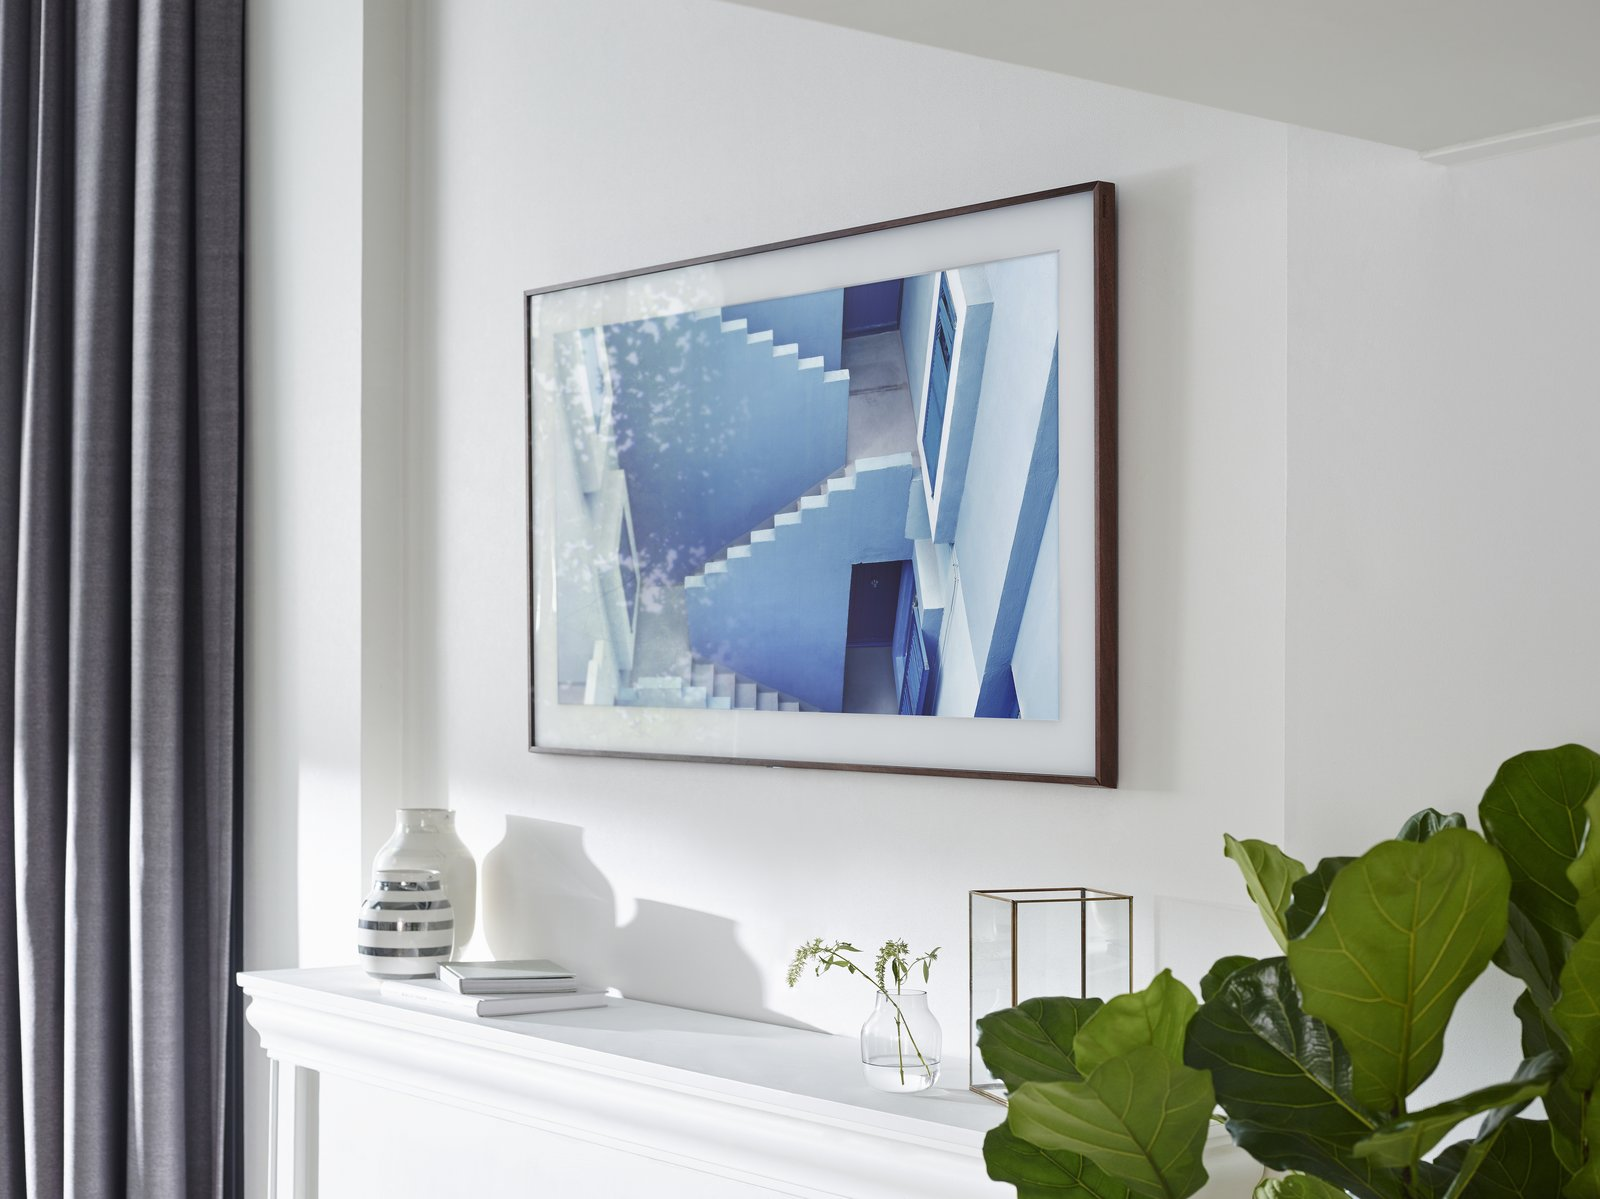 Fuseproject consulted art world experts in order to display art properly on the screen. Rather than installing built-in matting, they added it digitally in high-defintion.  Photo 4 of 5 in The Frame by Yves Behar for Samsung